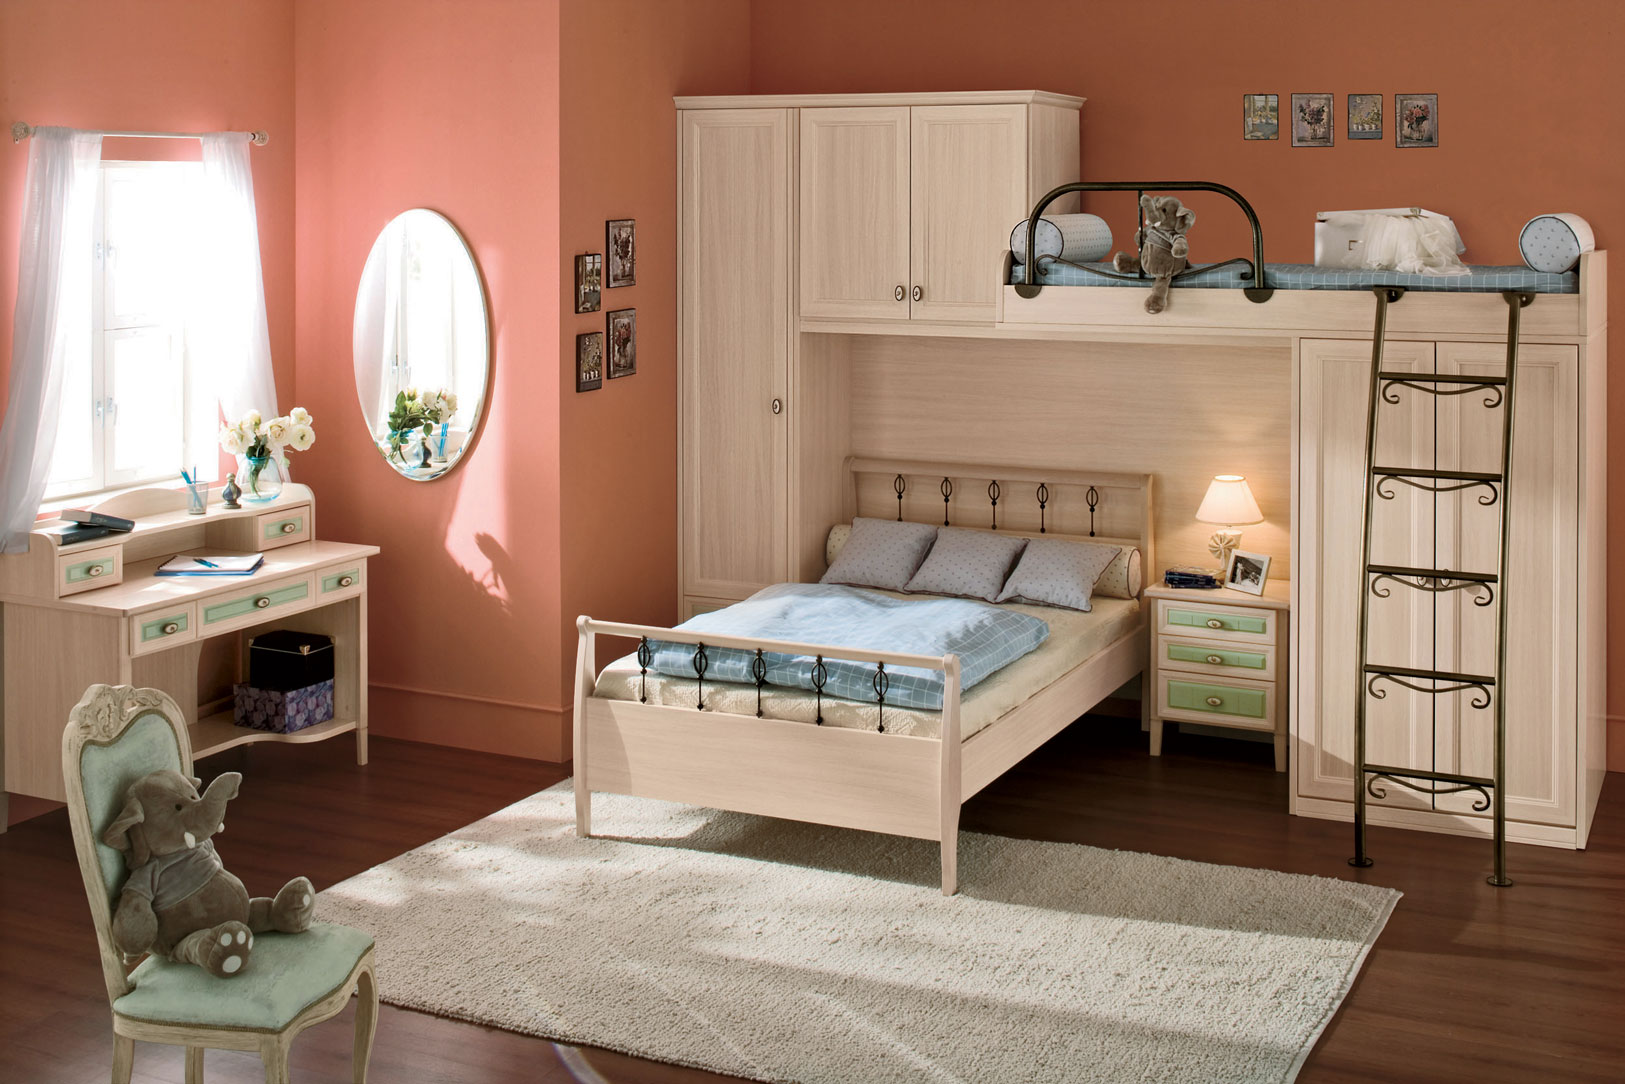 Home sweet home kid s rooms from russian maker akossta - Bedroom for kids ...